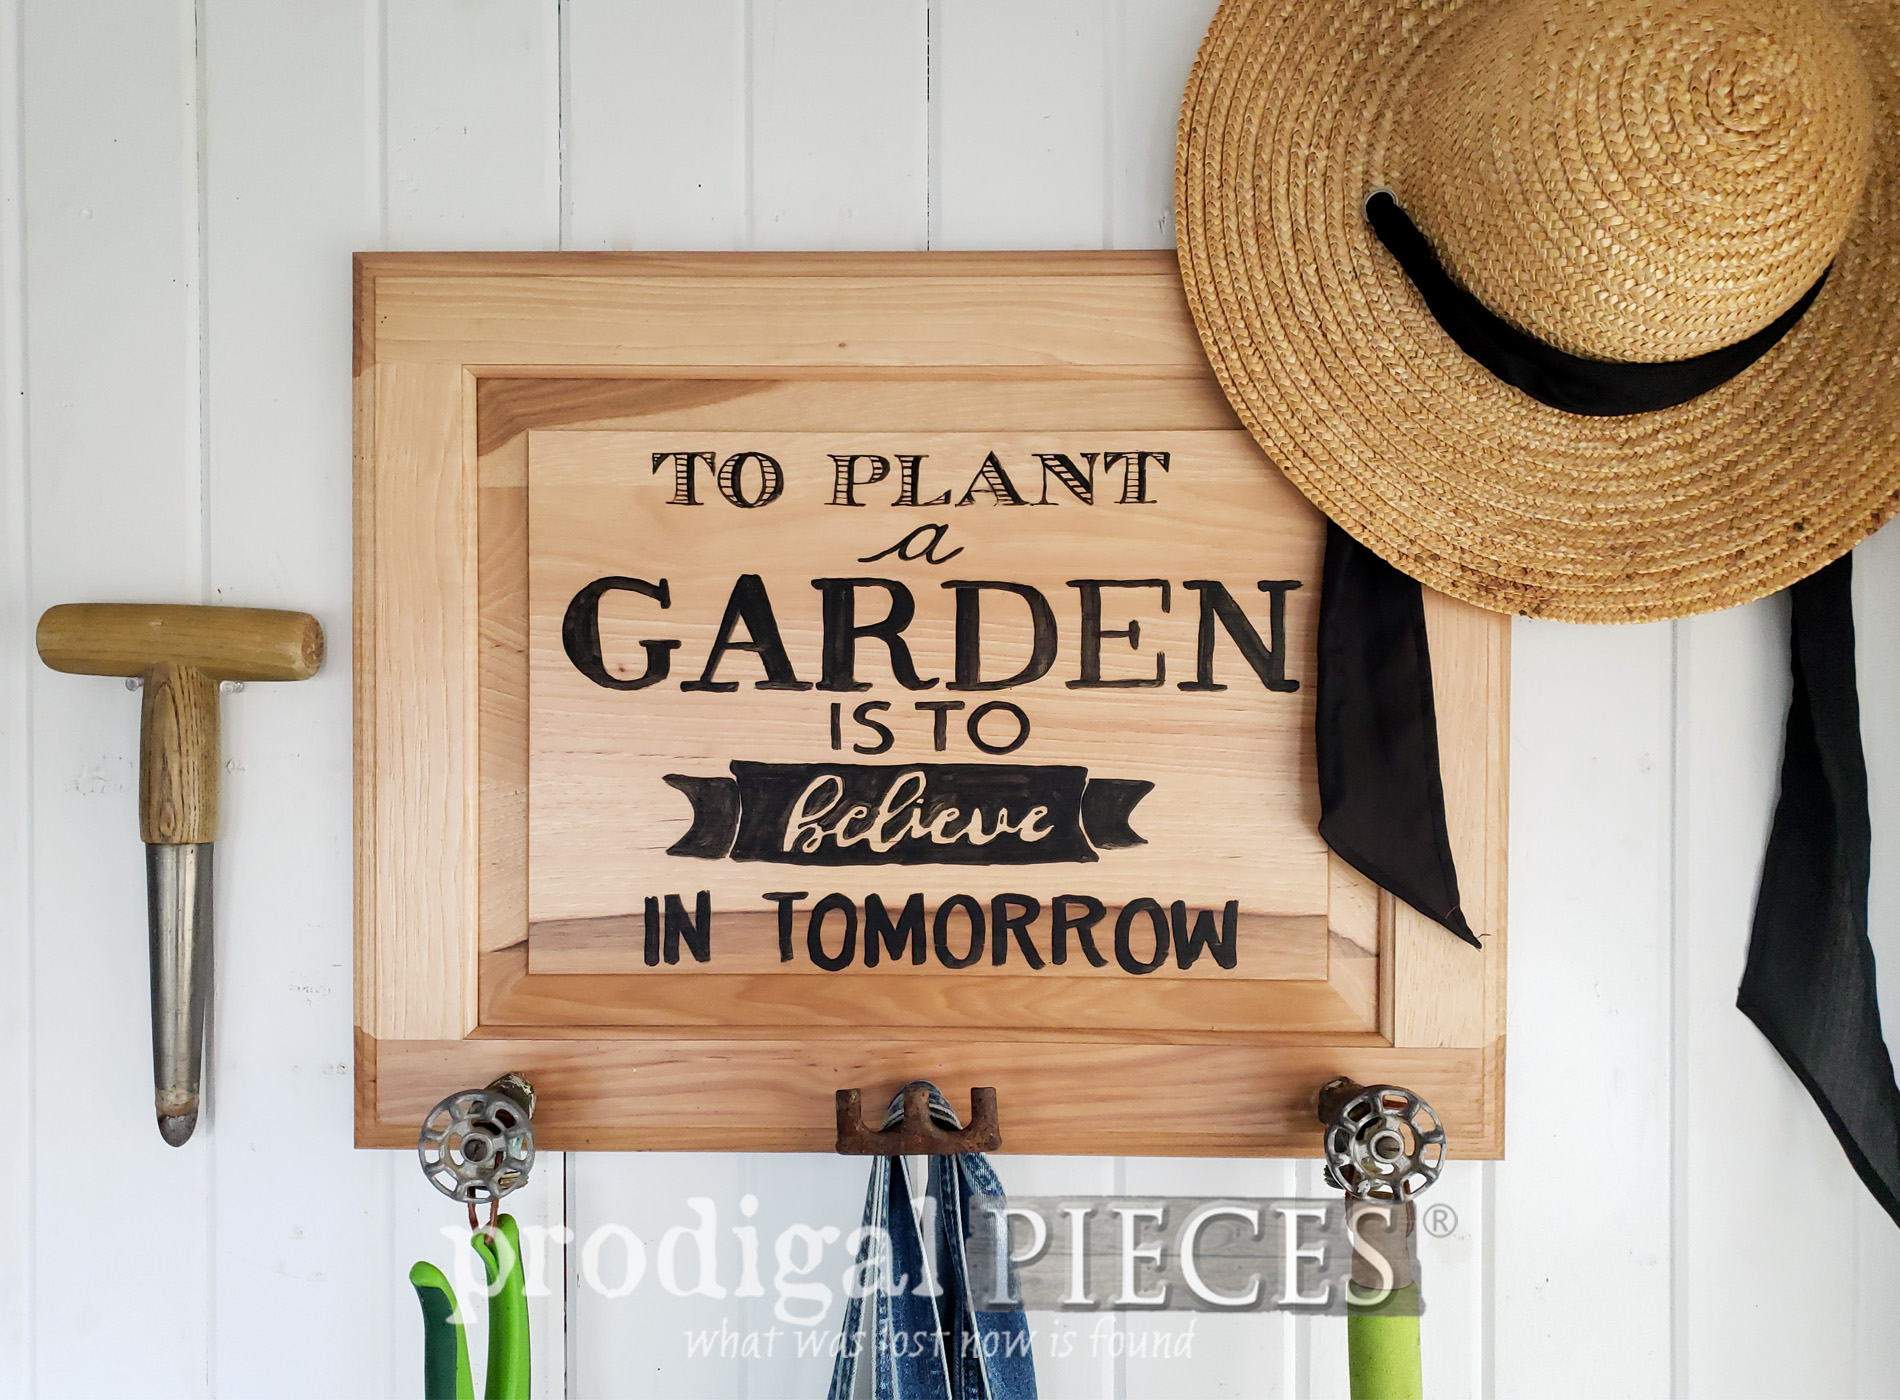 Featured Upcycled Cupboard Door Turned Garden Sign & Coat Rack by Larissa of Prodigal Pieces | prodigalpieces.com #prodigalpieces #garden #spring #farmhouse #diy #home #homedecor